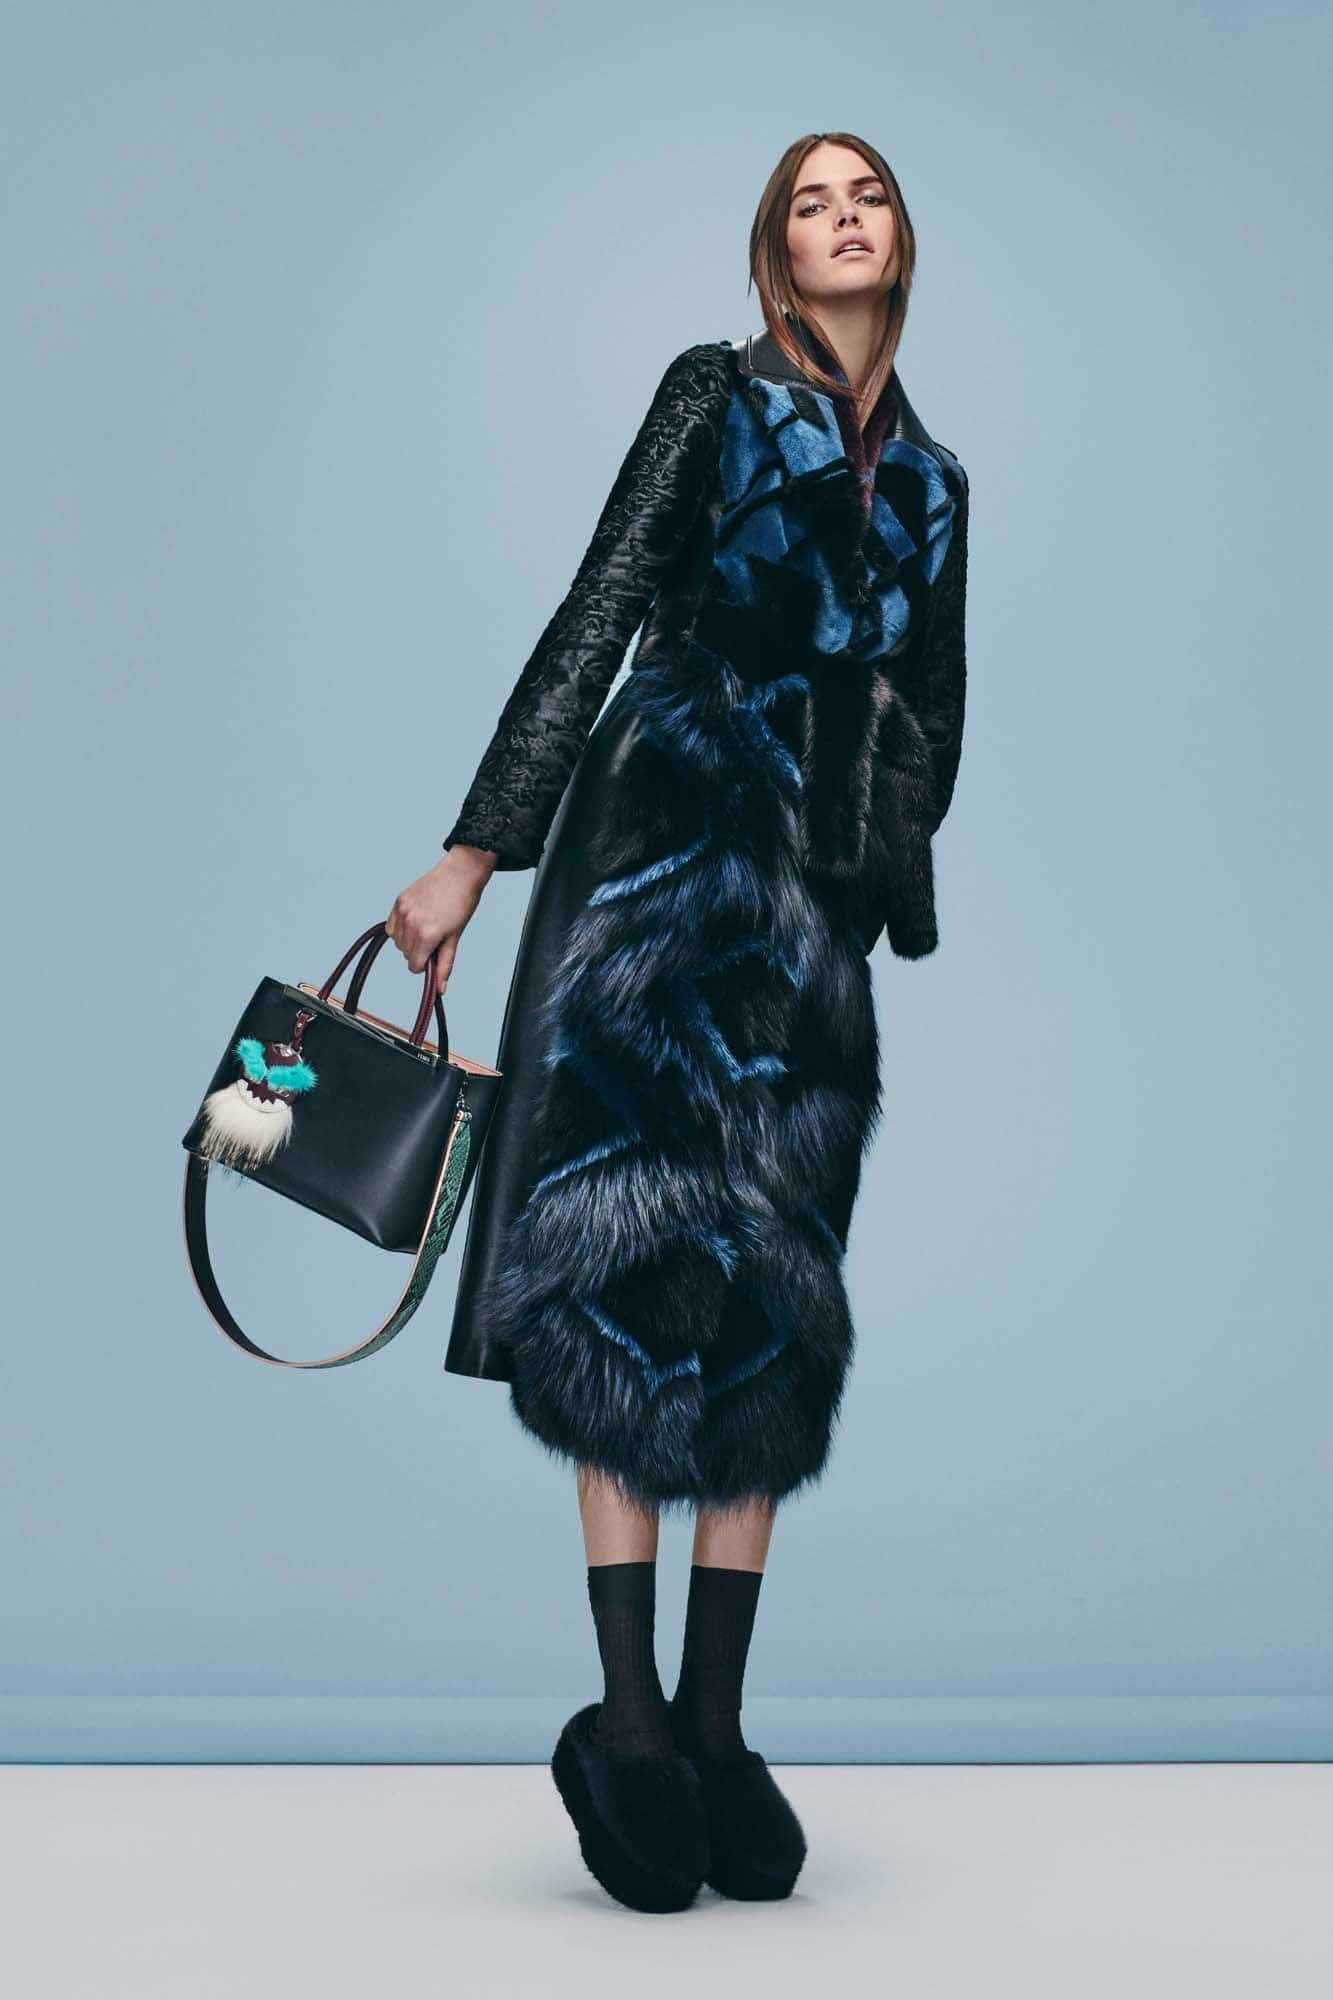 fendi prefall 2016 bag collection – spotted fashion